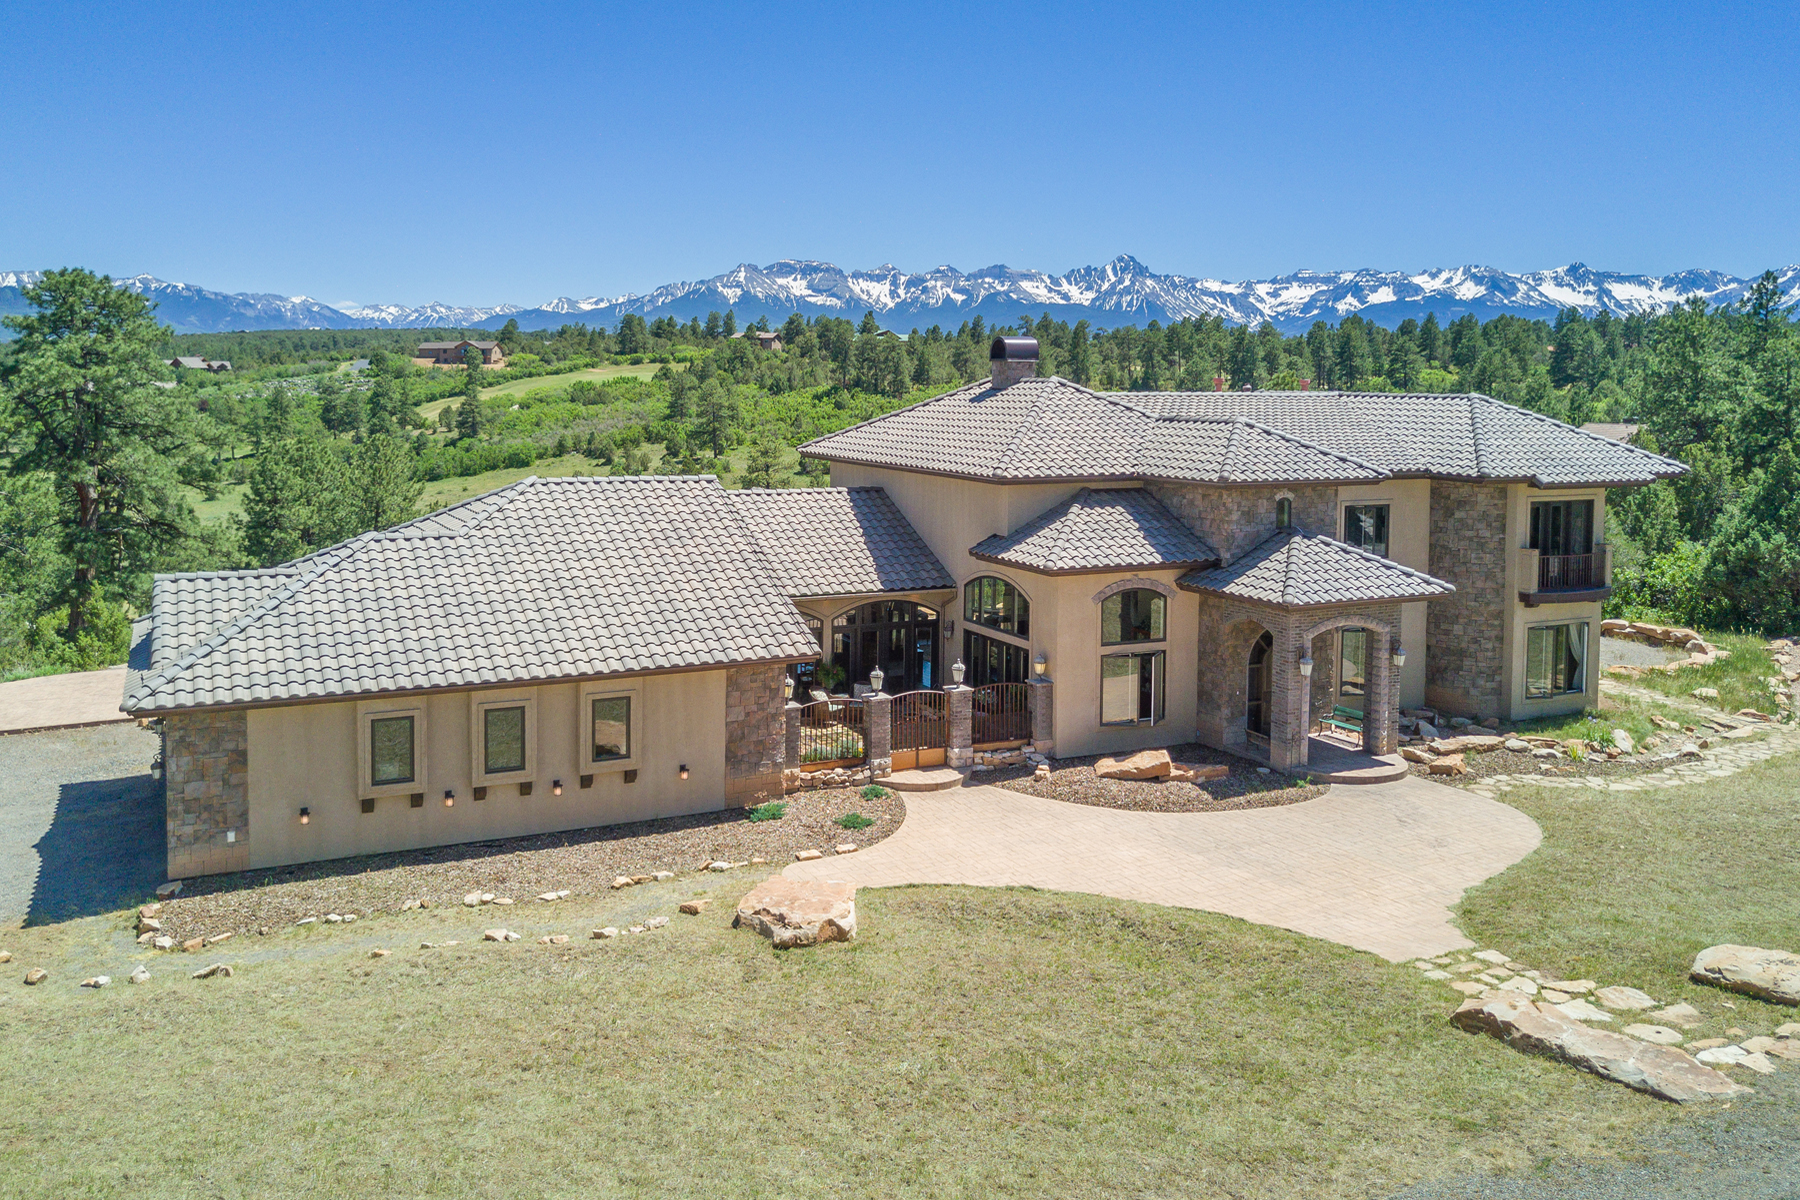 Single Family Homes for Sale at Ridgway, Colorado 81432 United States